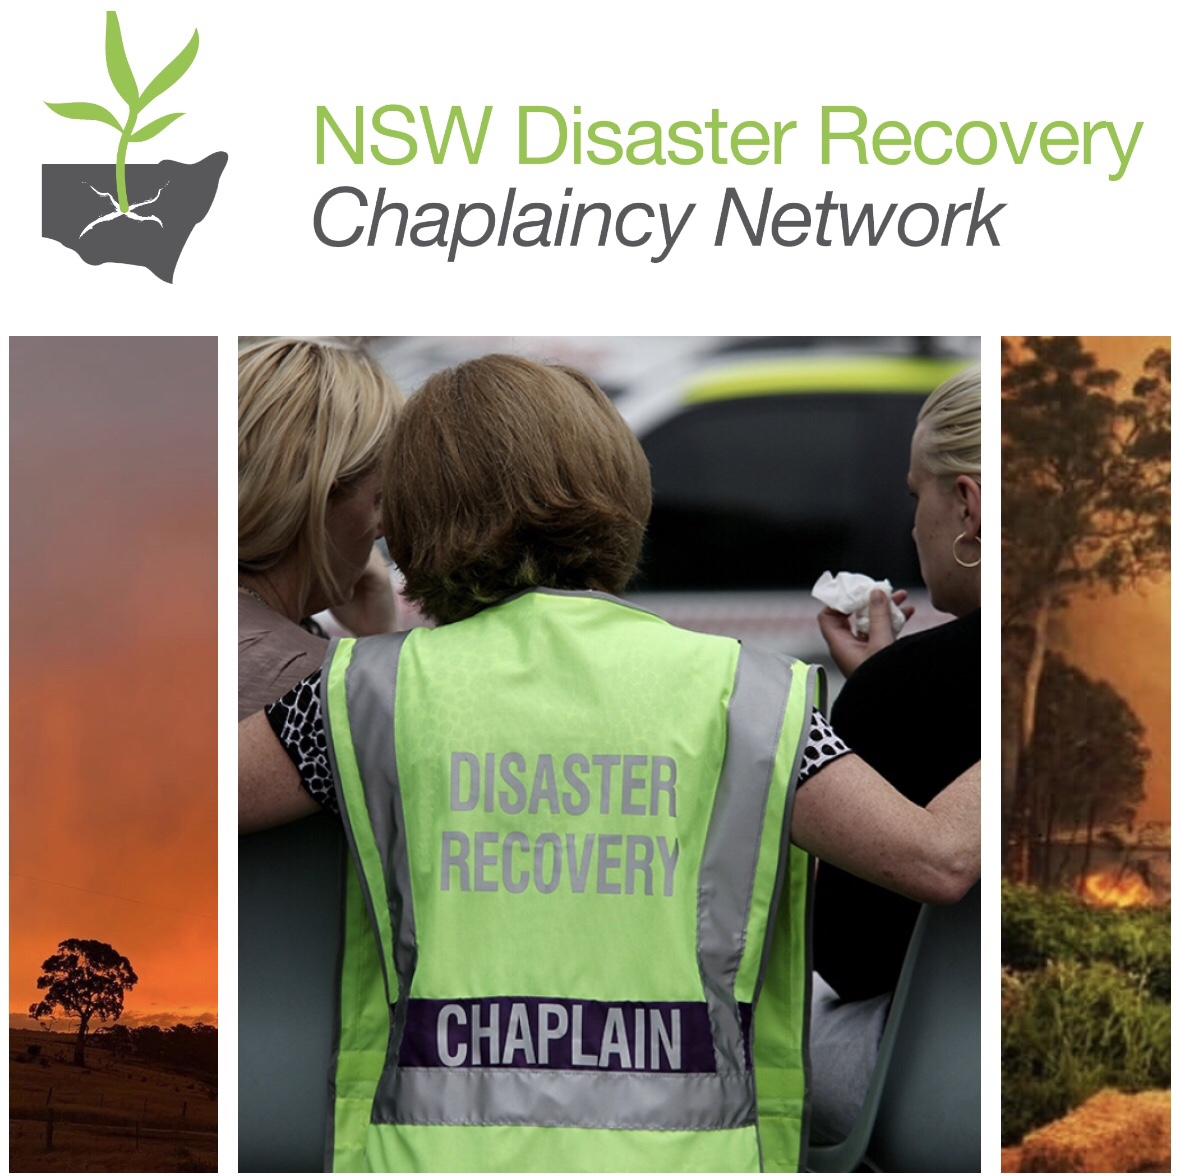 What are the churches doing during the bushfirecrisis?